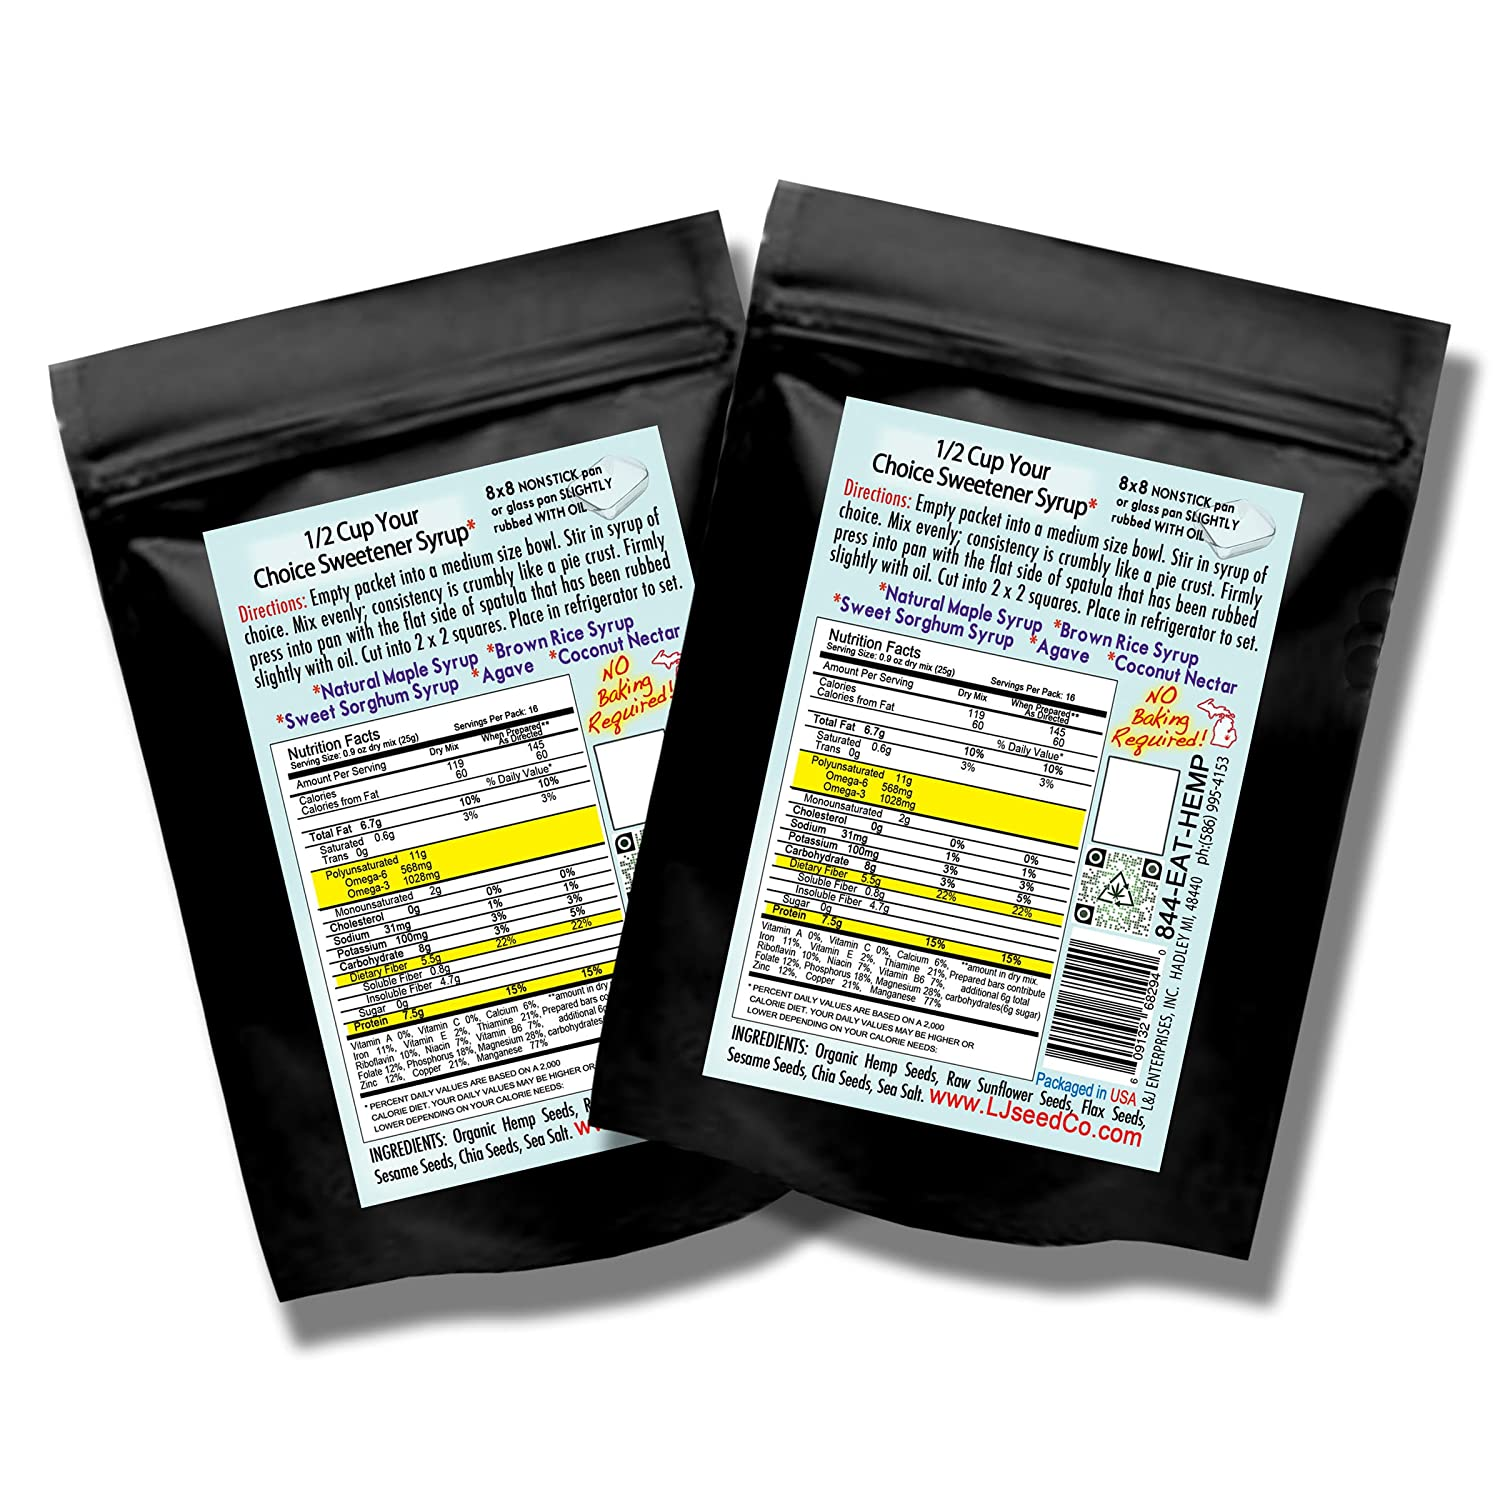 Lady Jane Gourmet Seed Co GalaxSEED Energy Bar Mix, 2 count ...